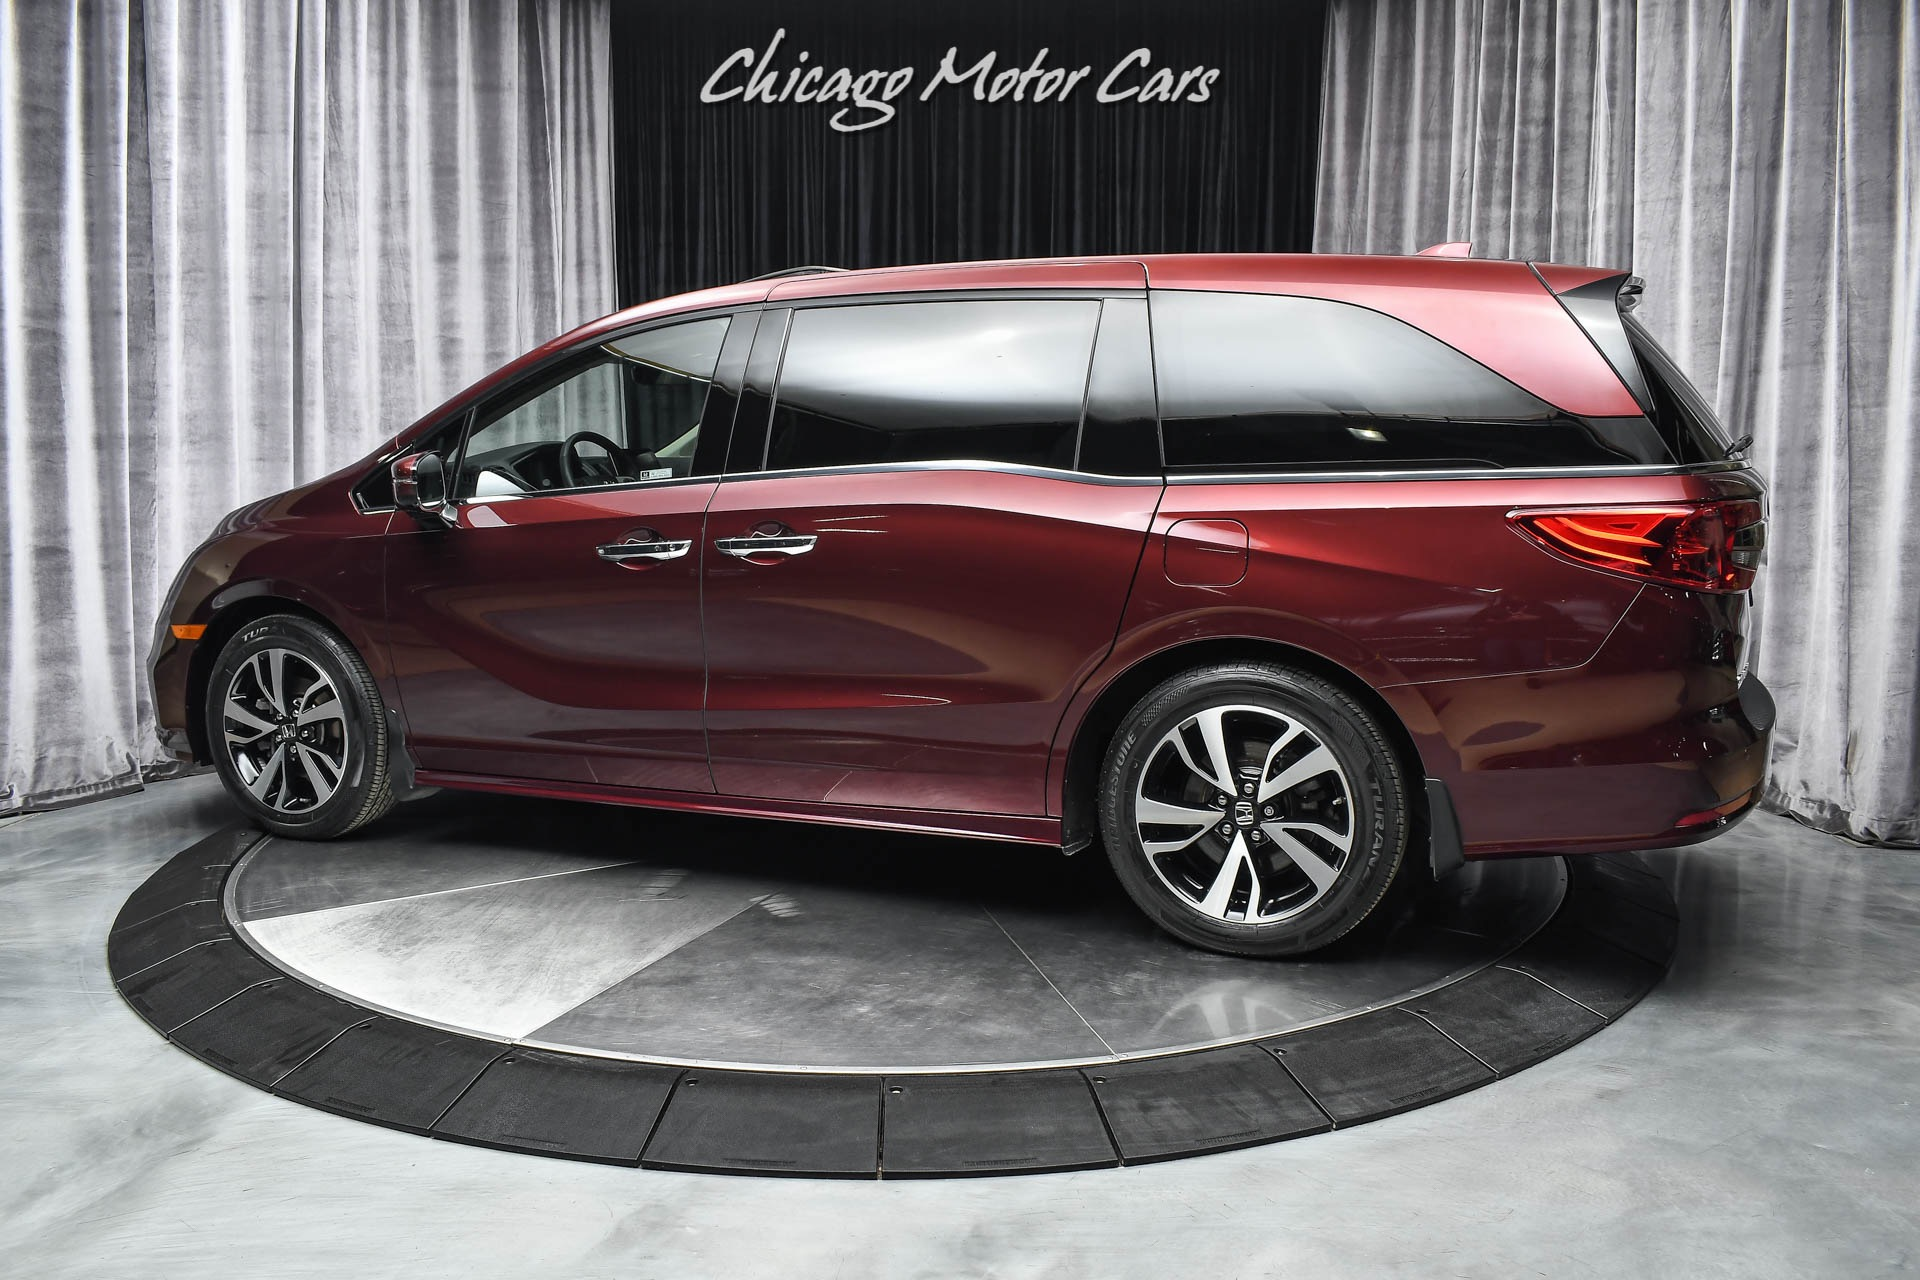 Used-2020-Honda-Odyssey-Elite-Mini-Van-EXCELLENT-CONDITION-WELL-EQUIPPED